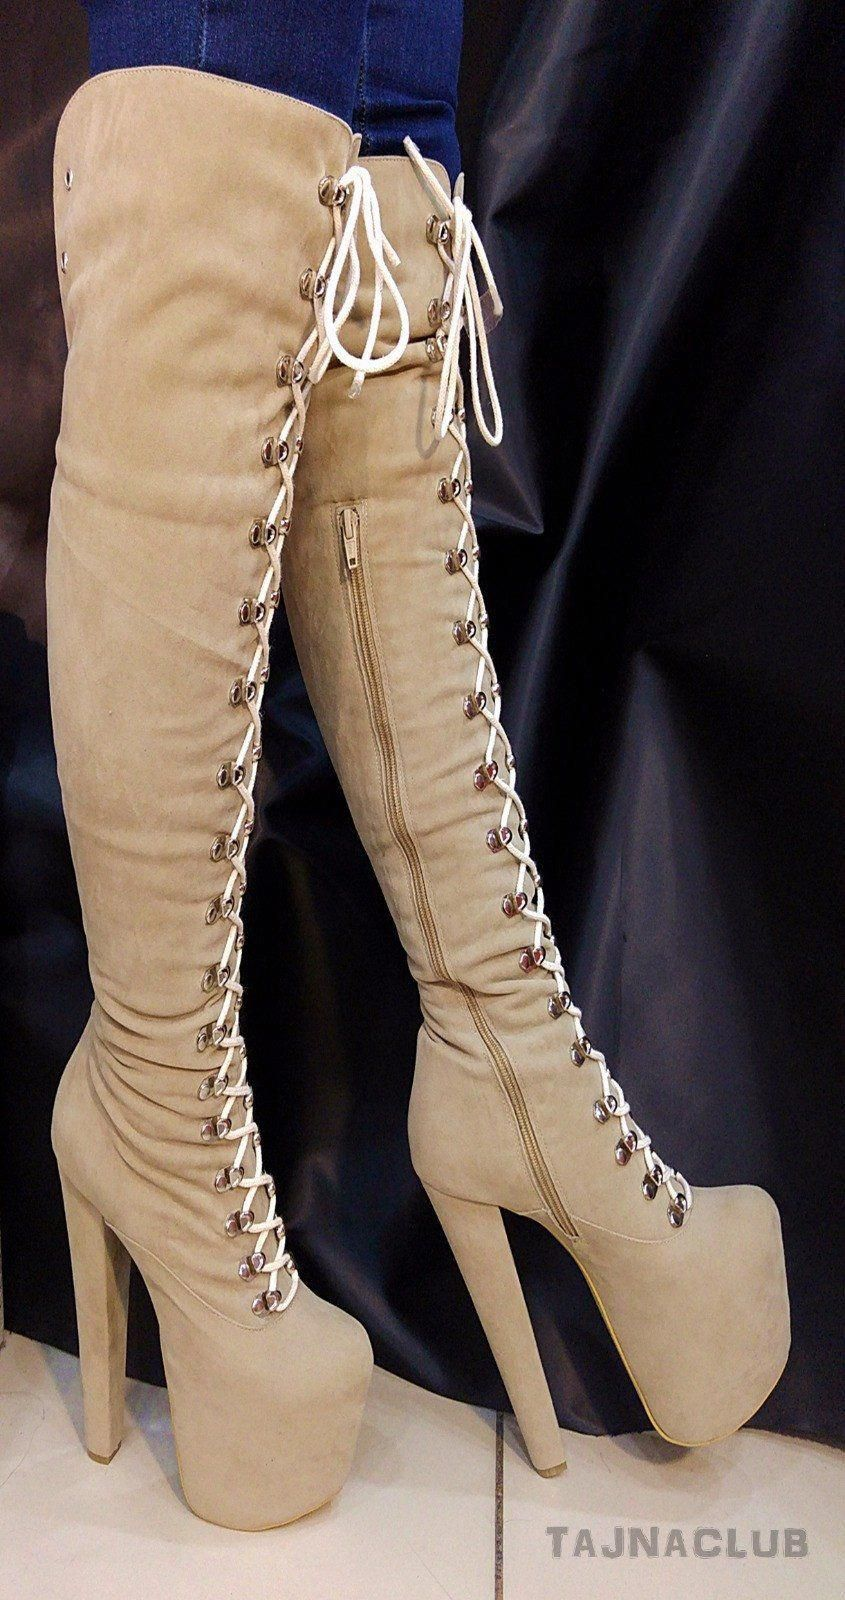 36c9094a3a5 Cream Beige Suede Lace Up Platform Boots High Heel Shoes   YourPinterestLikes Long Boots